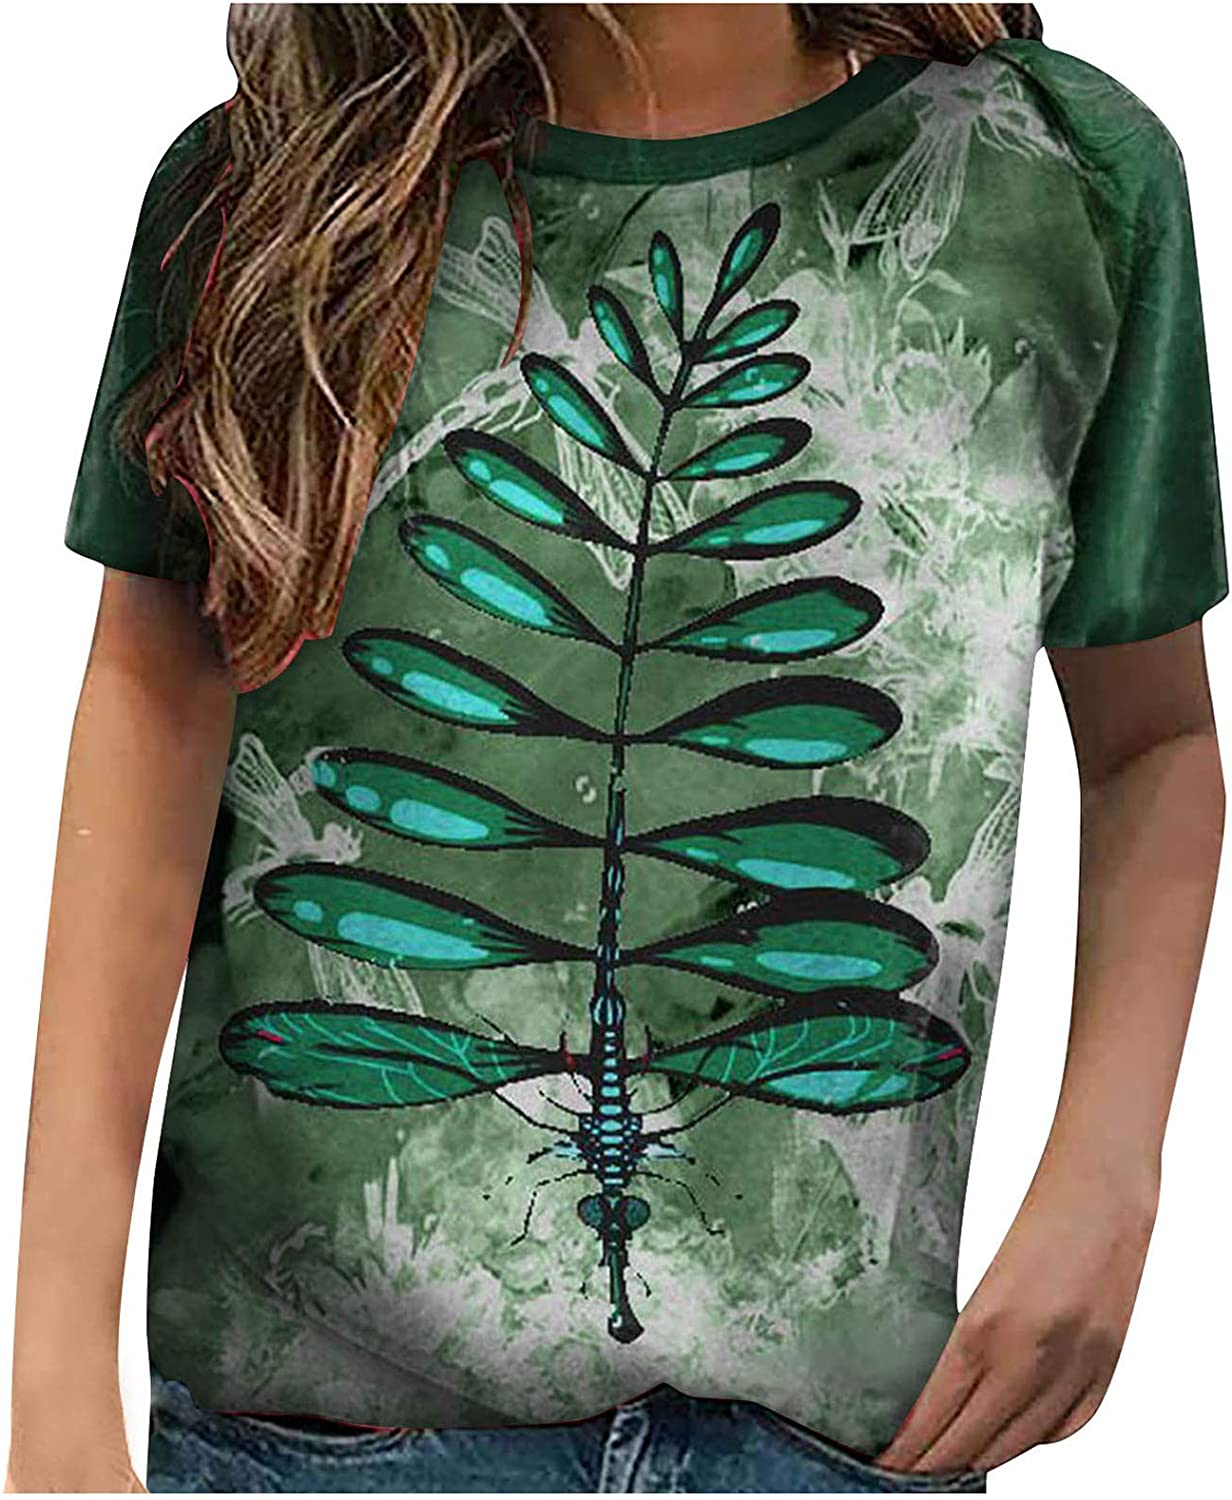 Tshirts for Womens Women's Dragonflies T-S gift In a popularity Graphic Sleeve Short